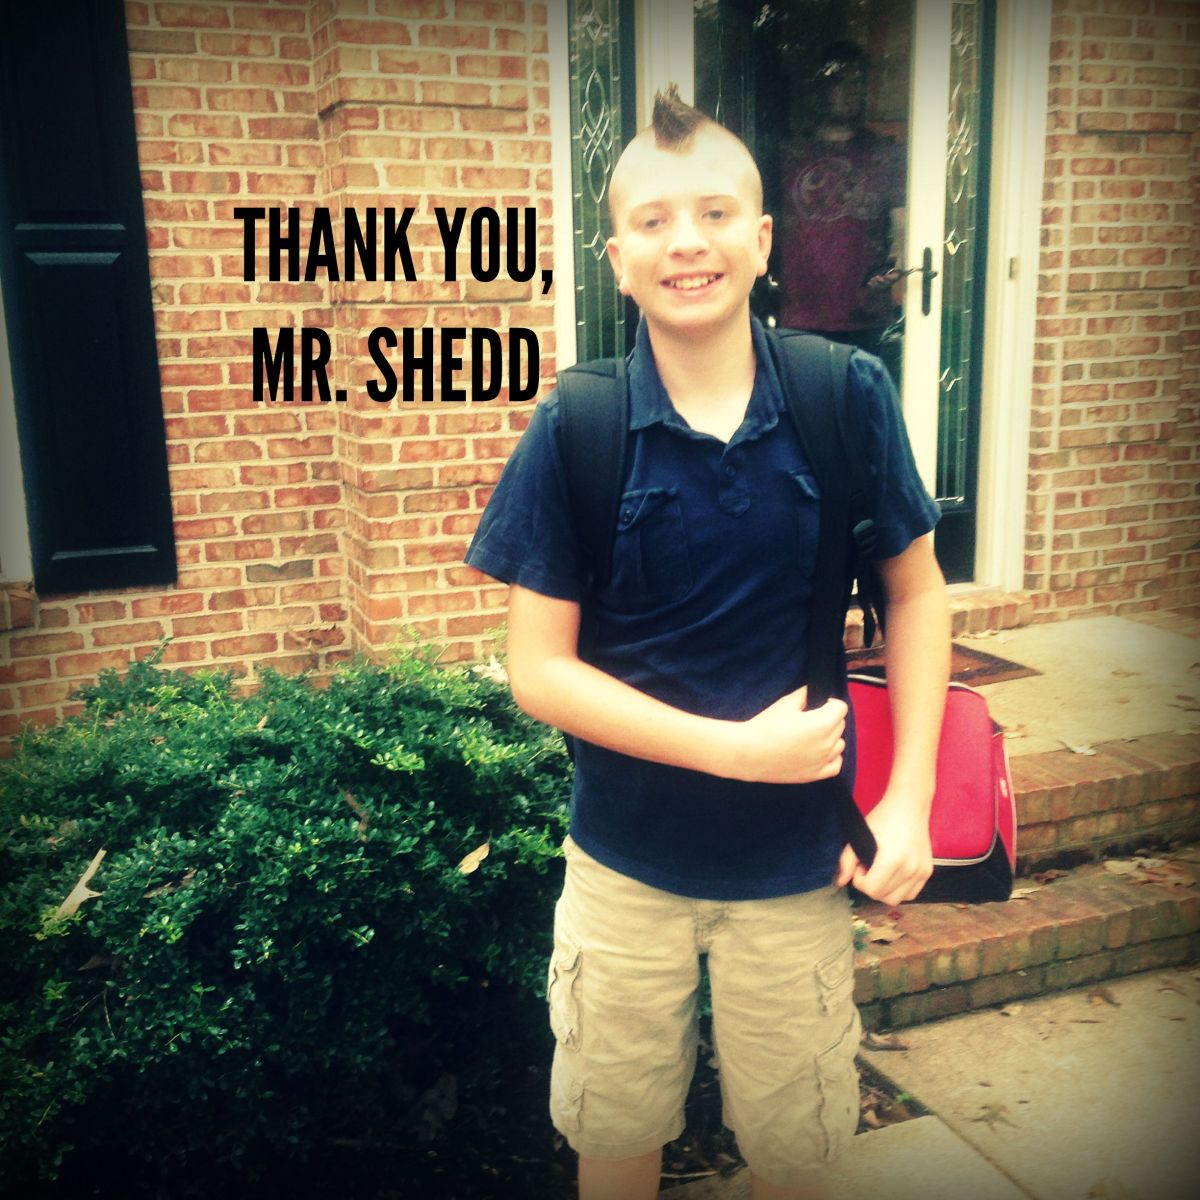 THANK YOU, MR. SHEDD